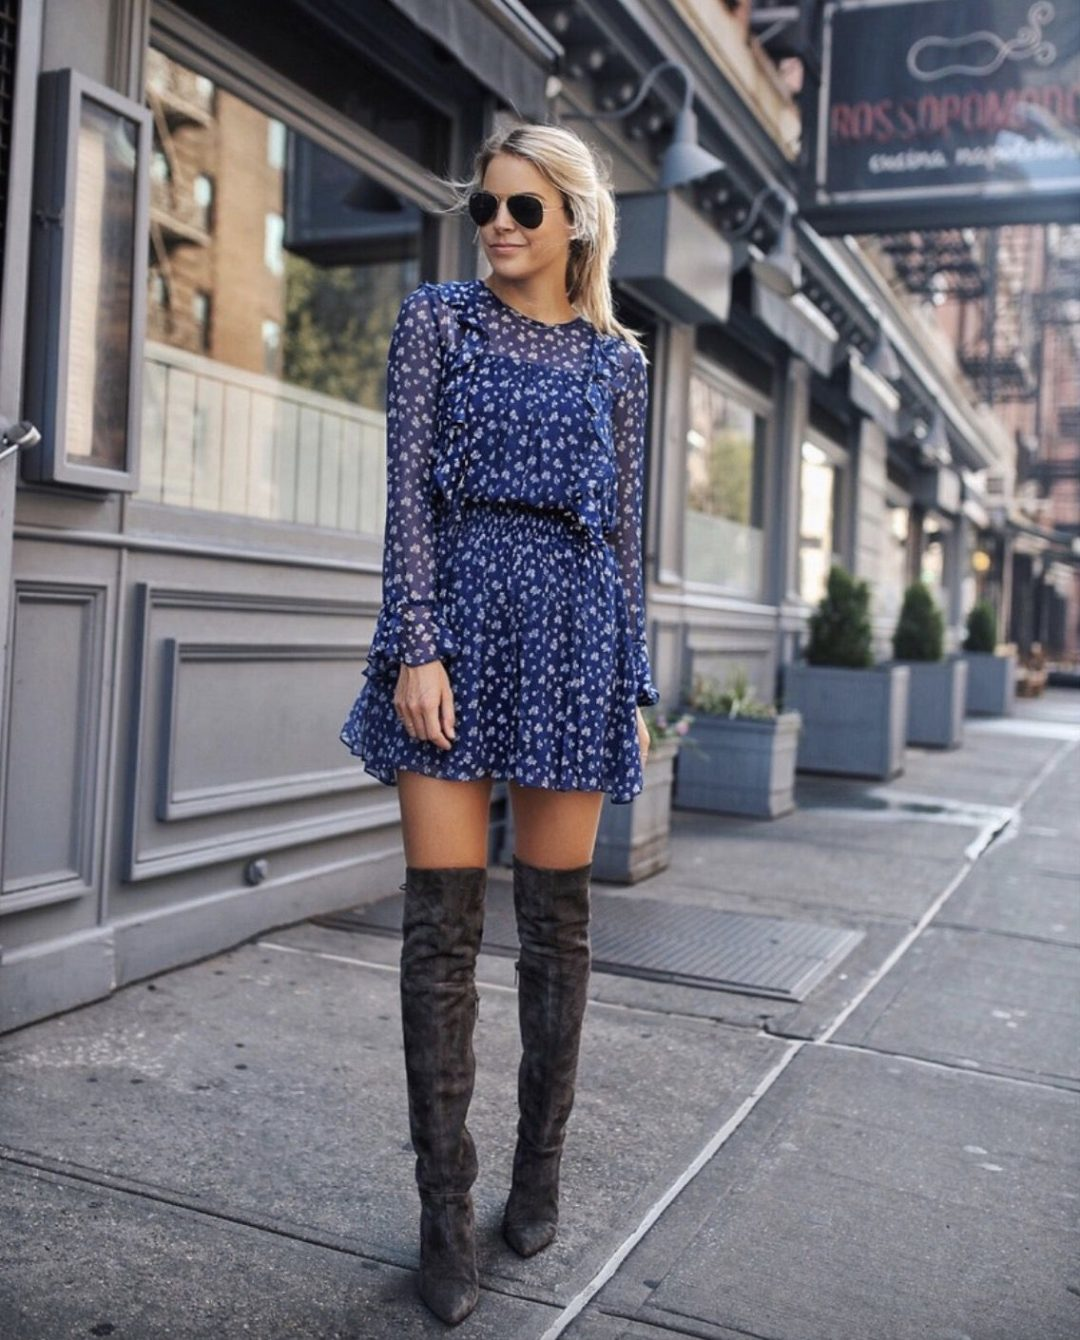 Grey thigh high boot looks with dresses - best fall outfits